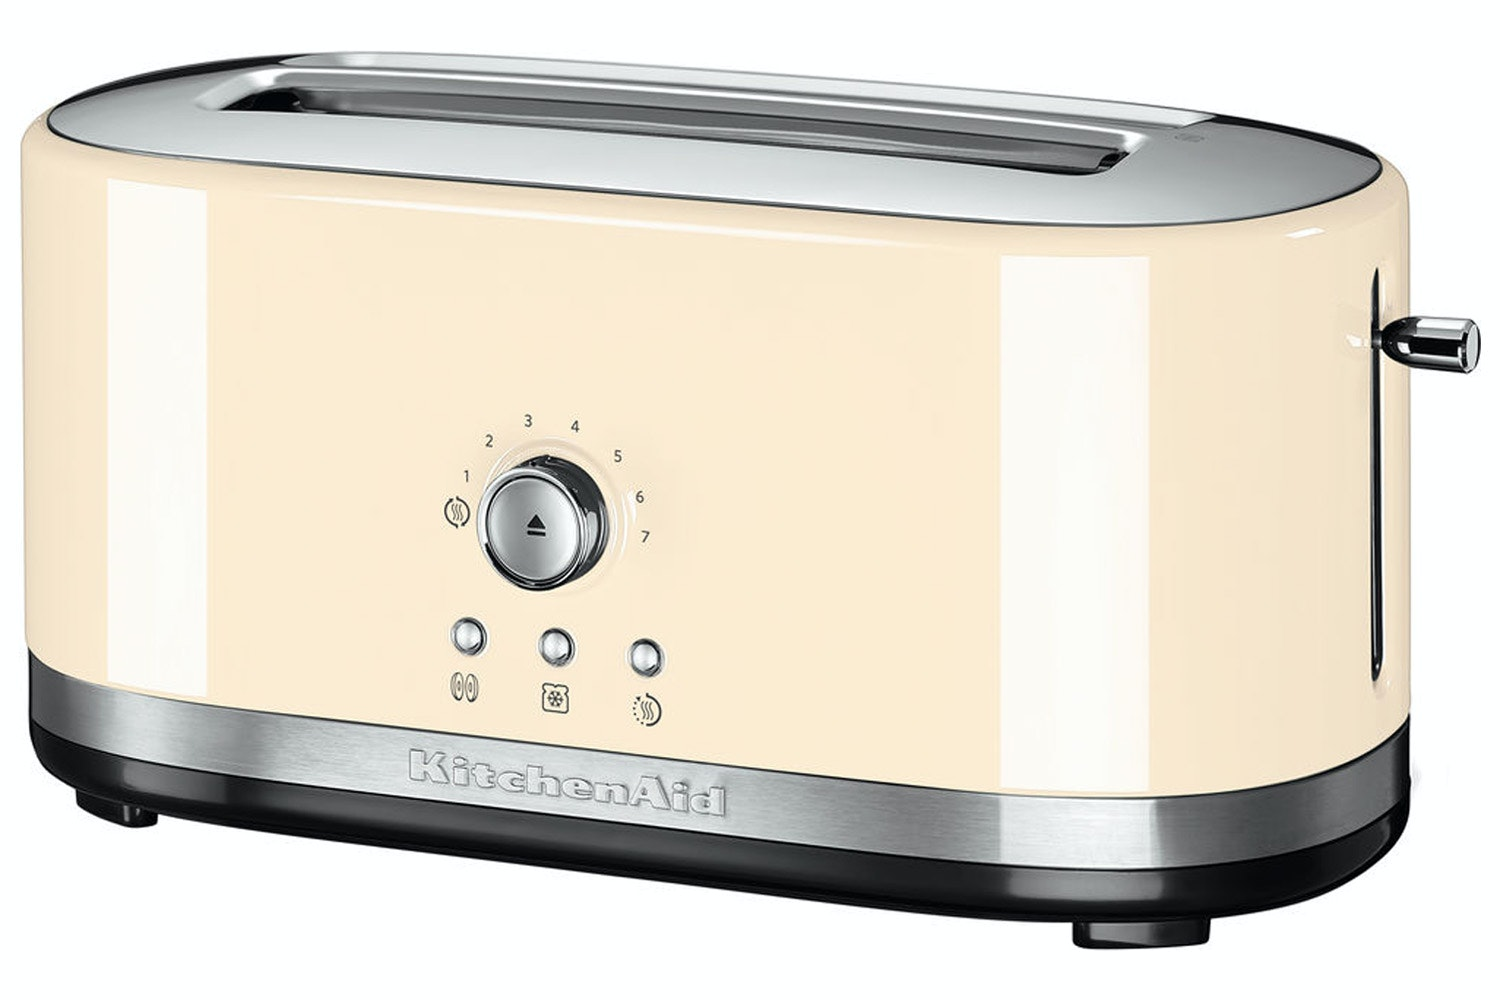 KitchenAid 4 Slice Toaster | 5KMT4116BAC | Almond Cream